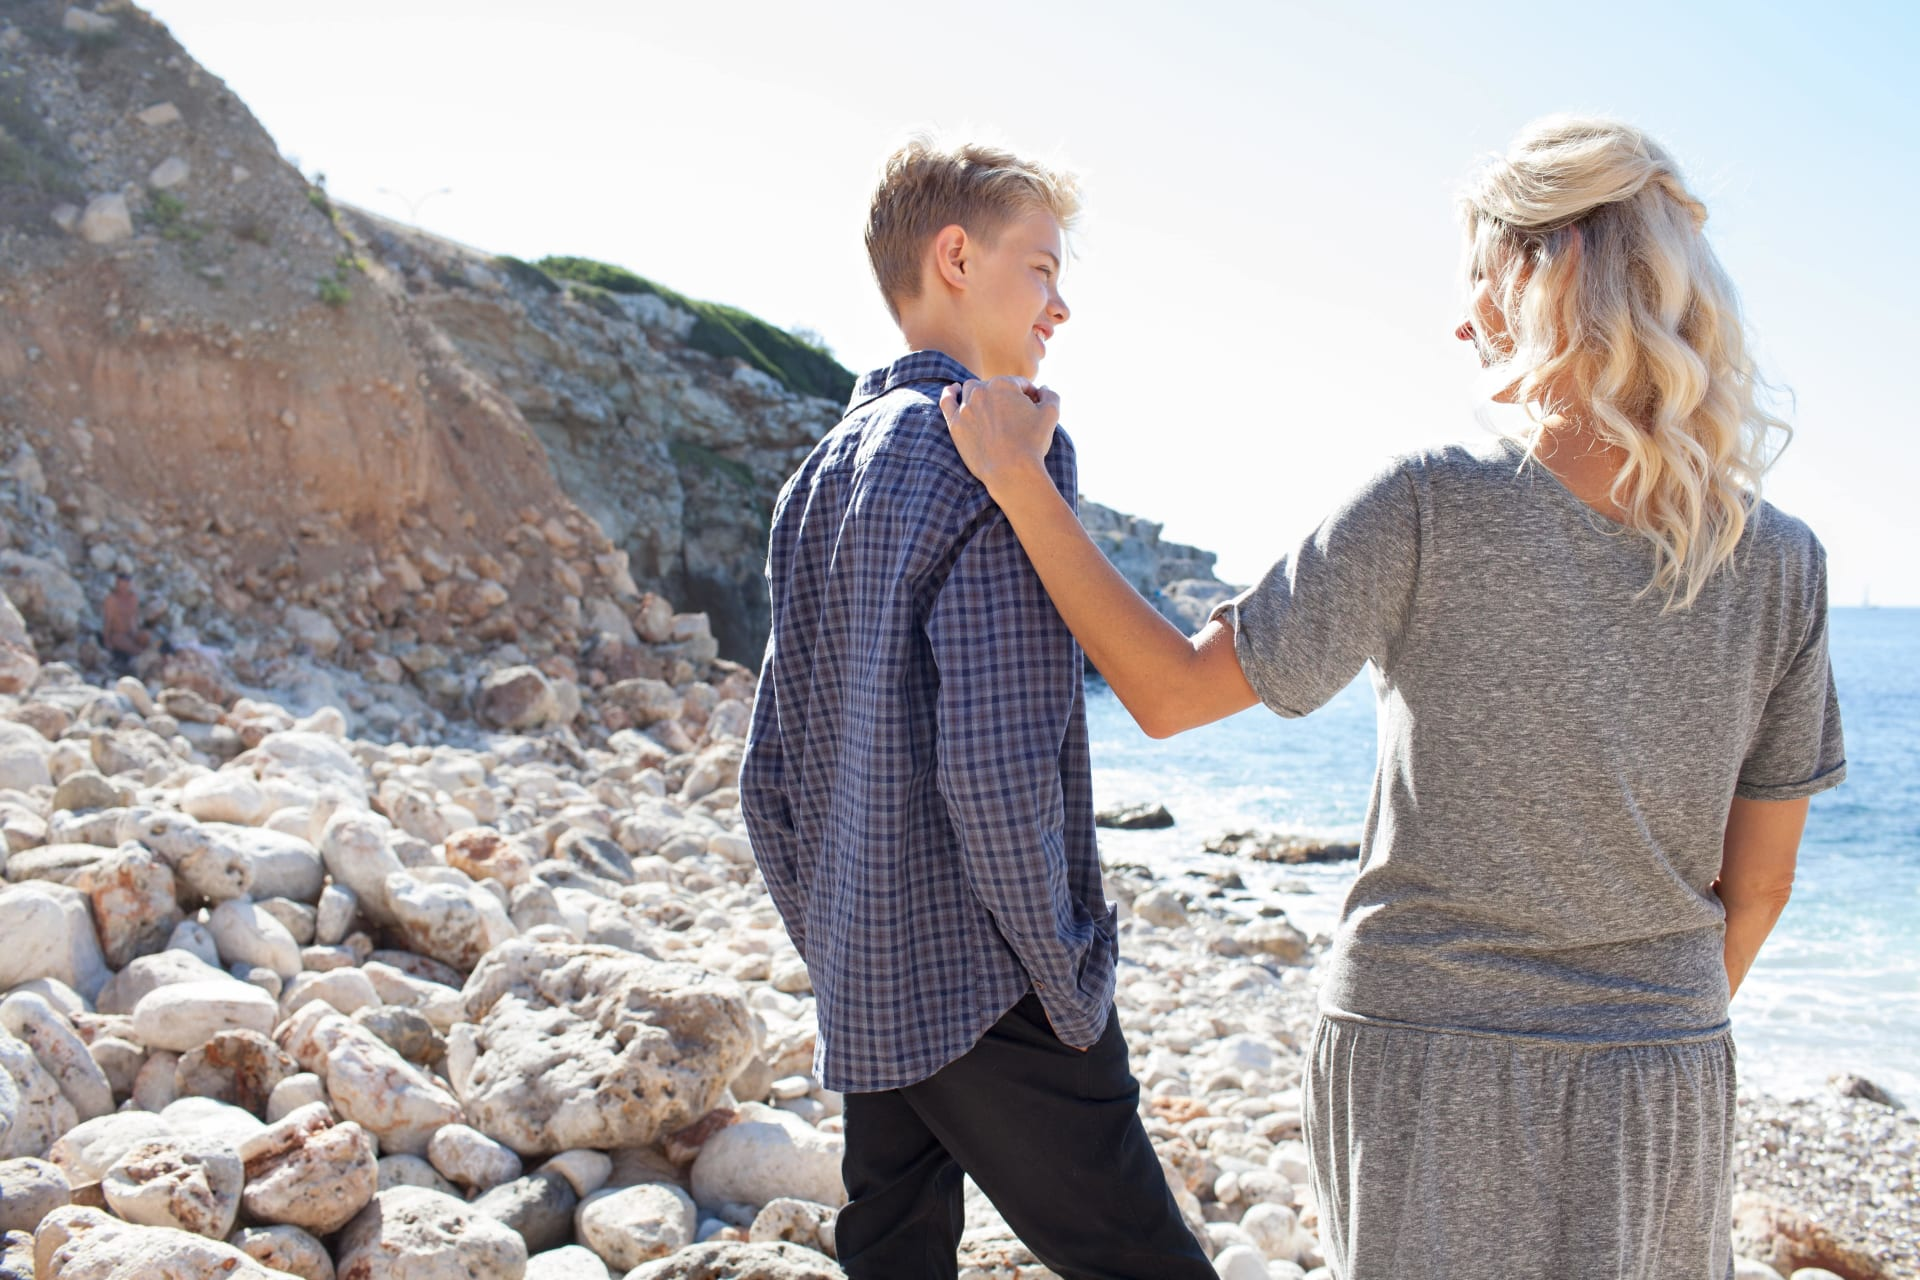 Mother and son standing on a beach